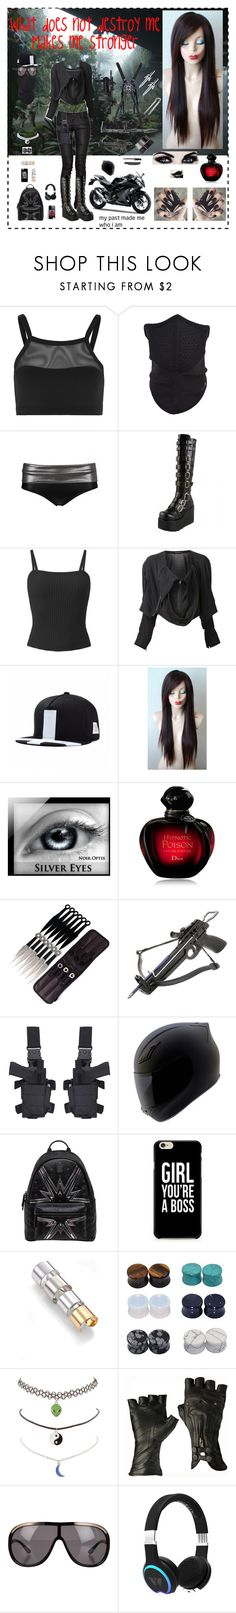 """What does not destroy me makes me stronger"" by cassiegrimes ❤ liked on Polyvore featuring Bula, Sweaty Betty, Concord, Yohji Yamamoto, Christian Dior, S.W.O.R.D., Kawasaki, DK, MCM and Caso"